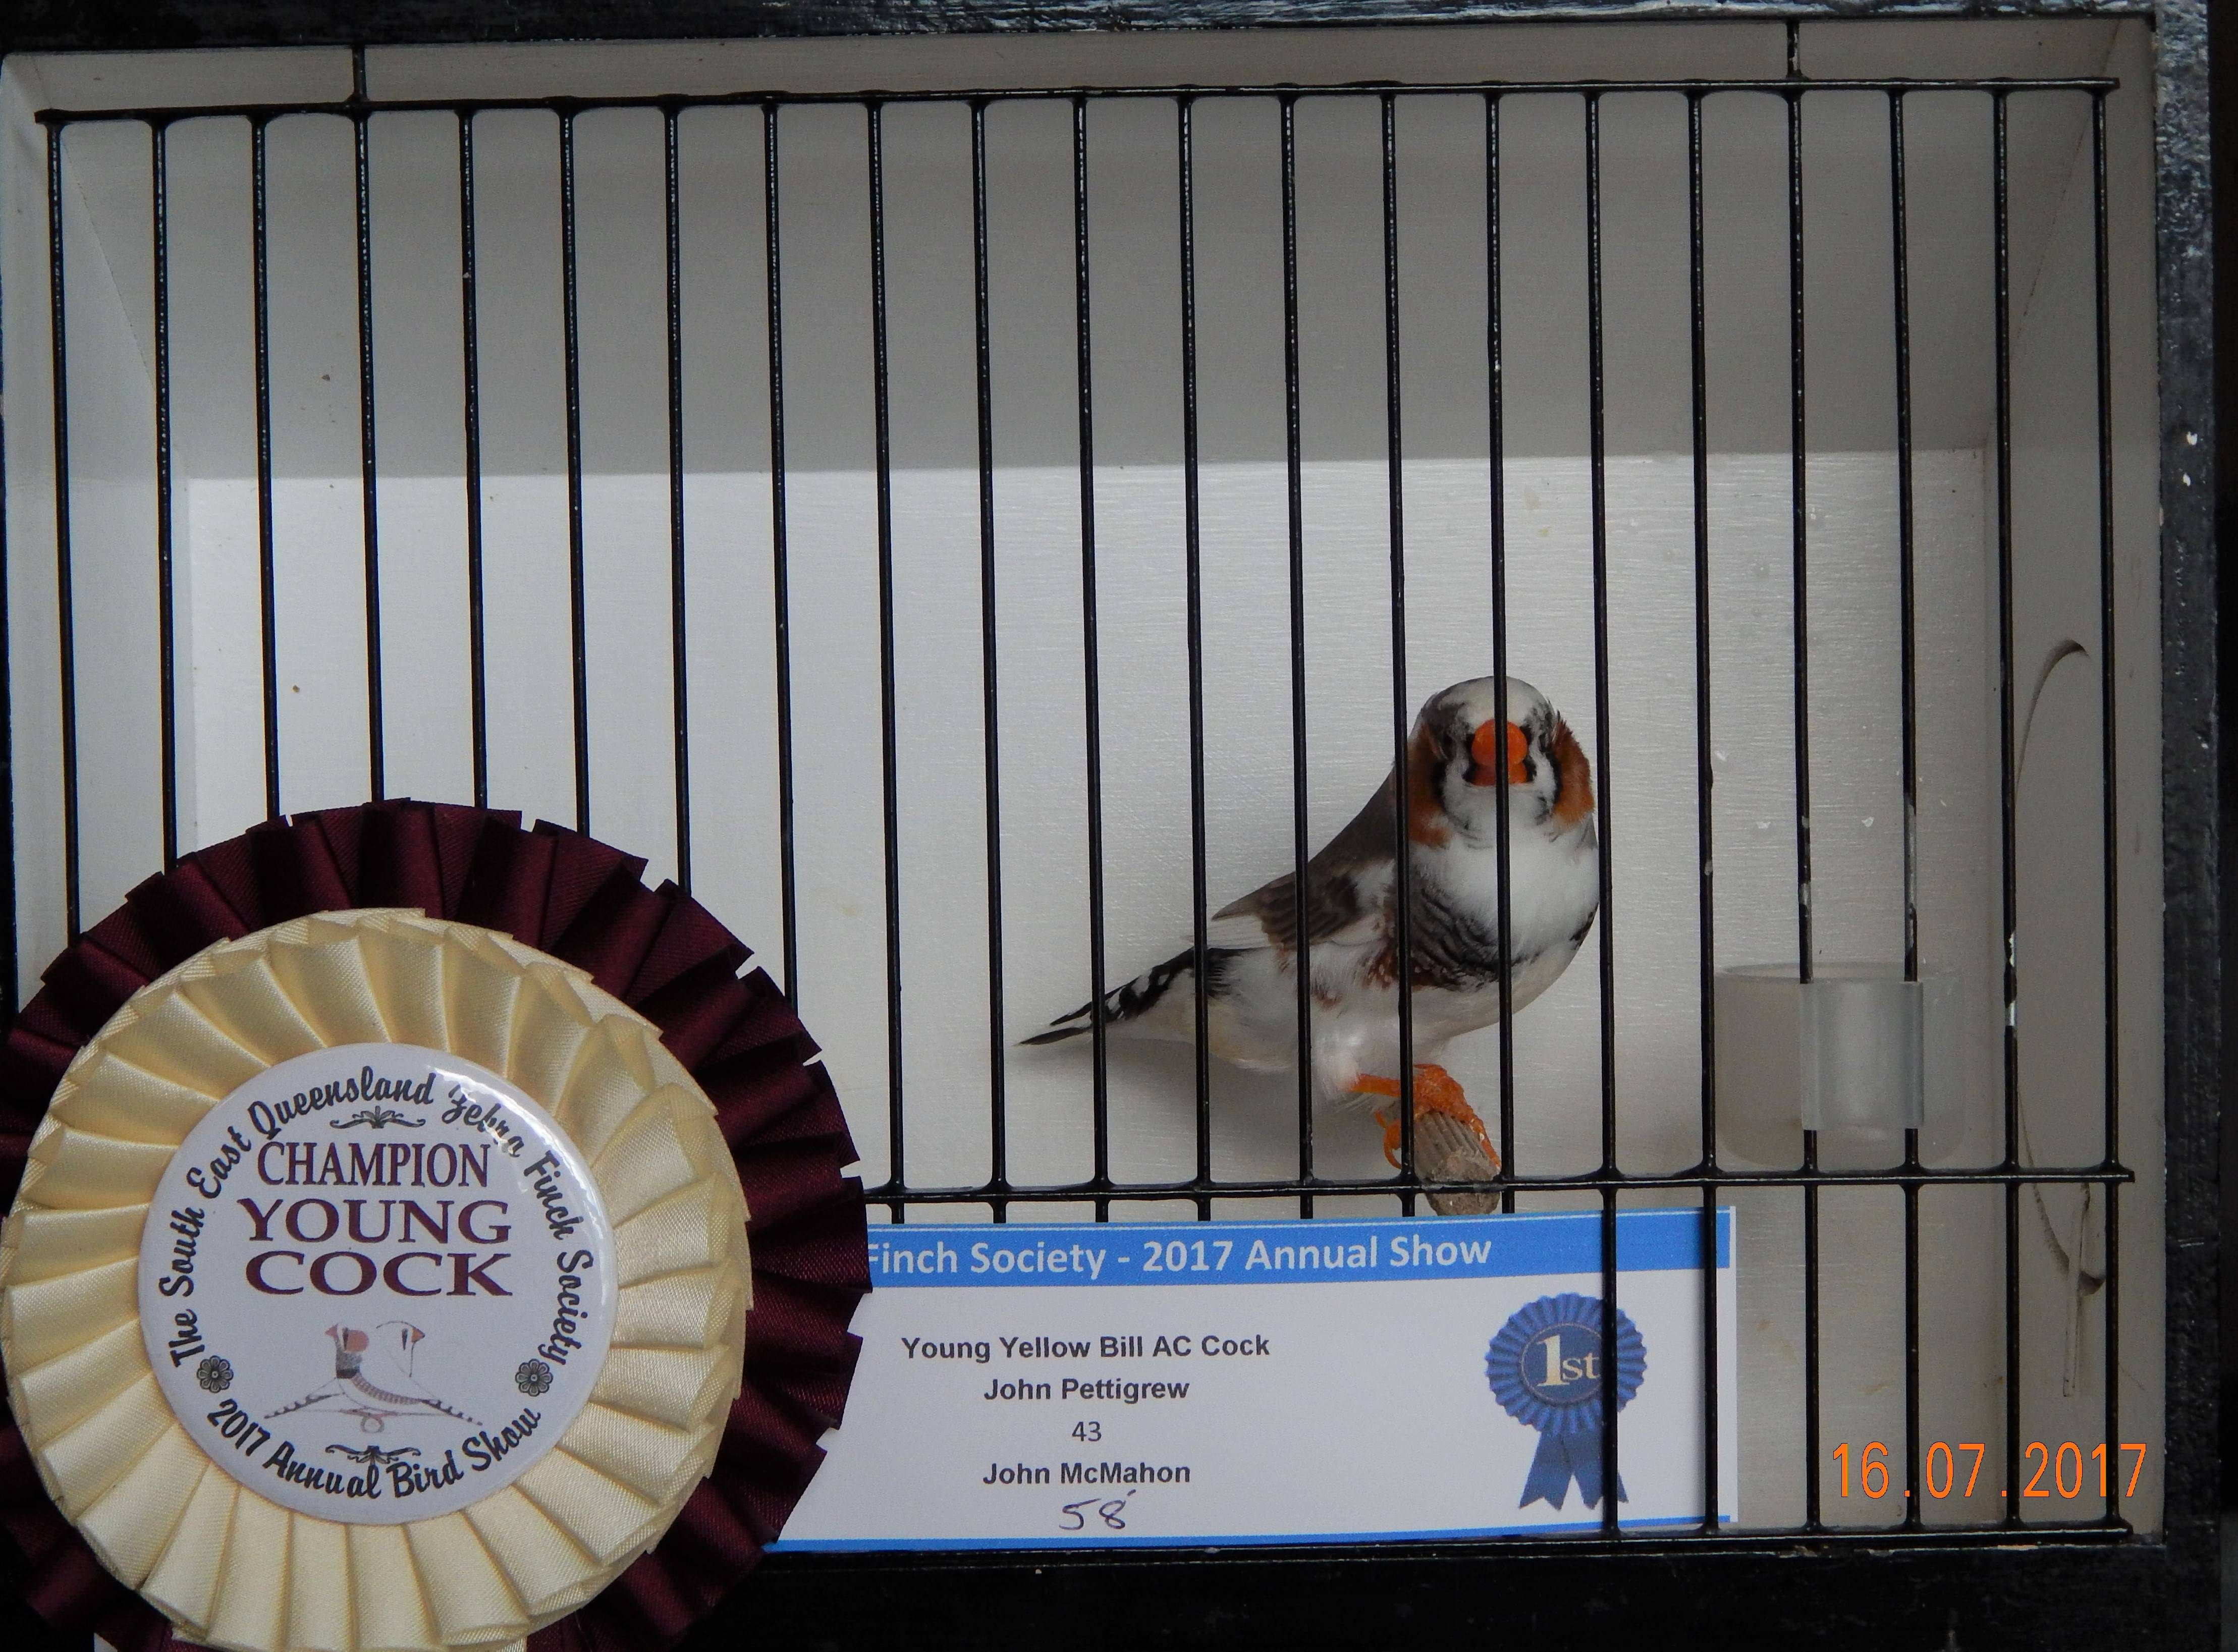 Champion Young Cock